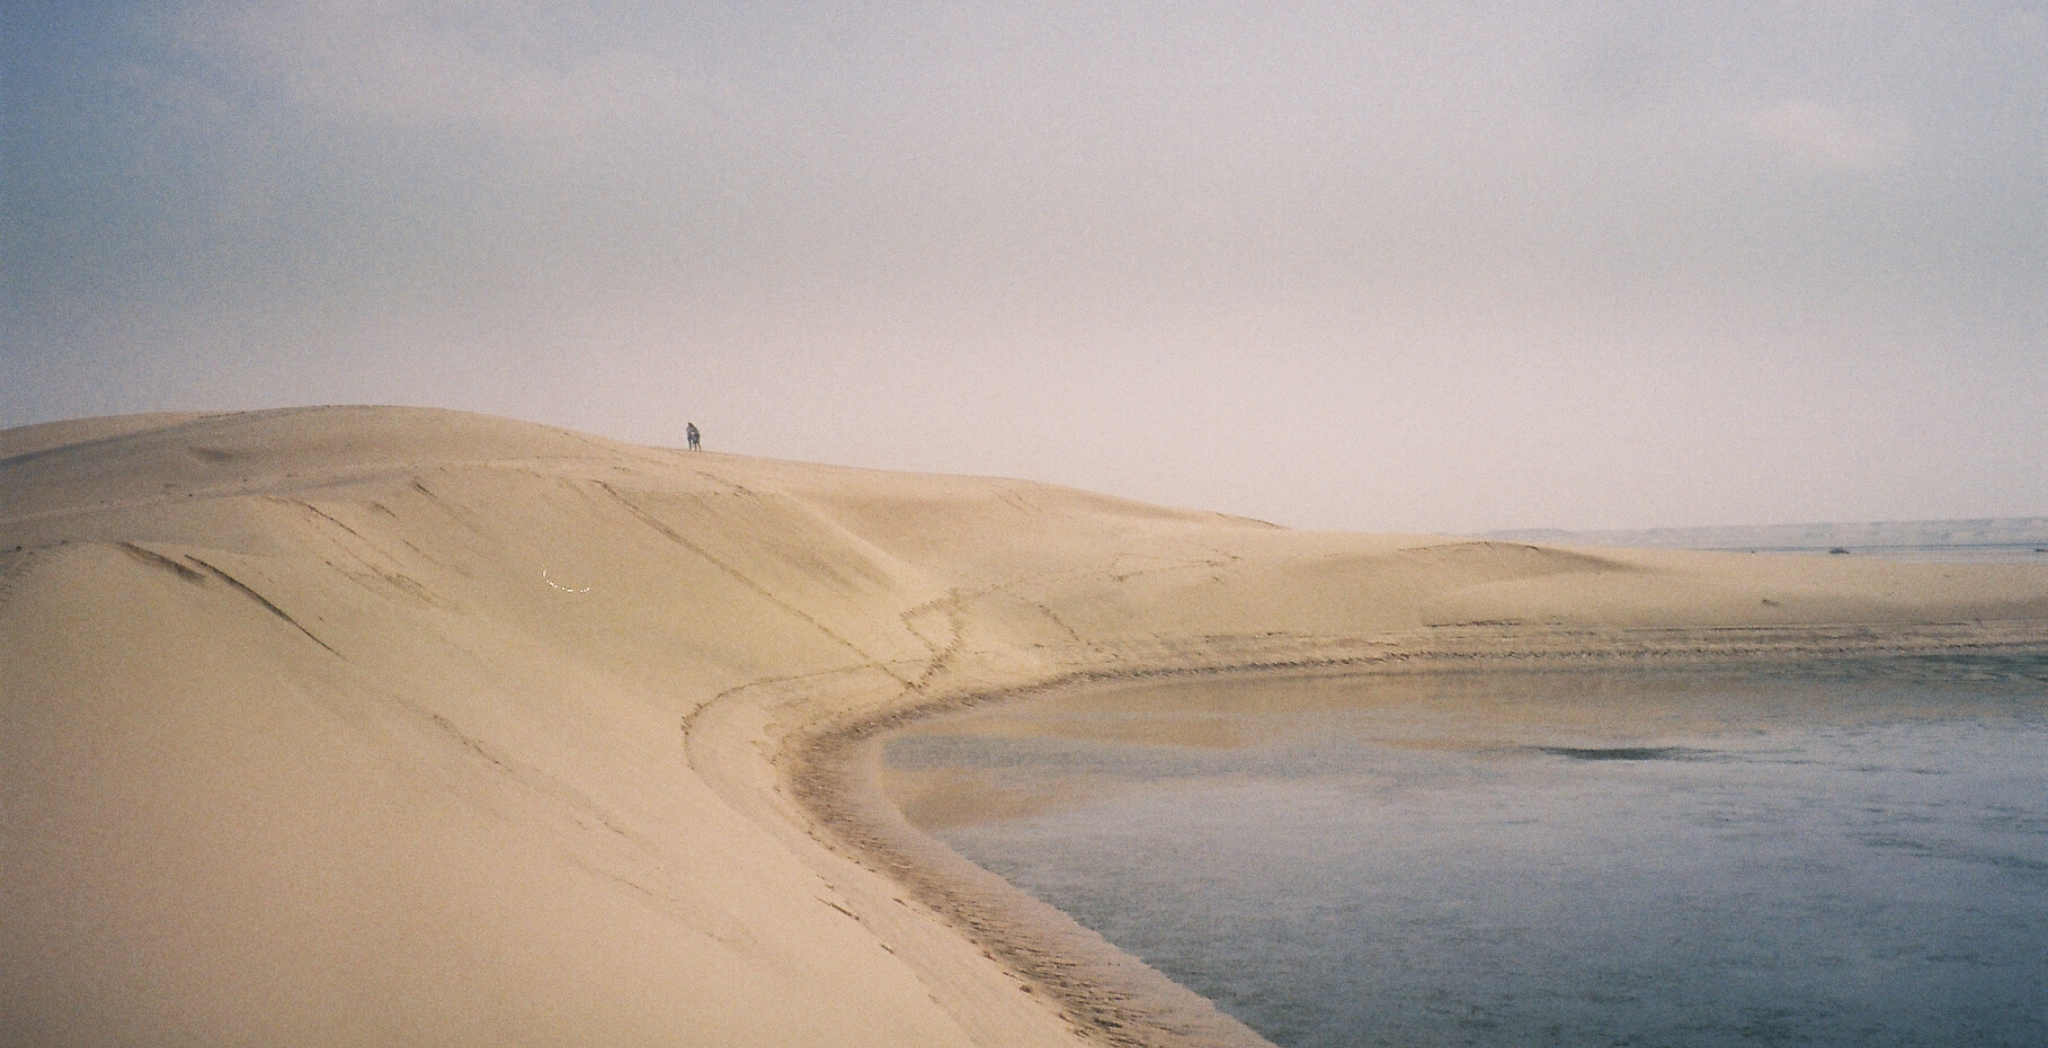 Morocco on film, Dakhla White Dunes